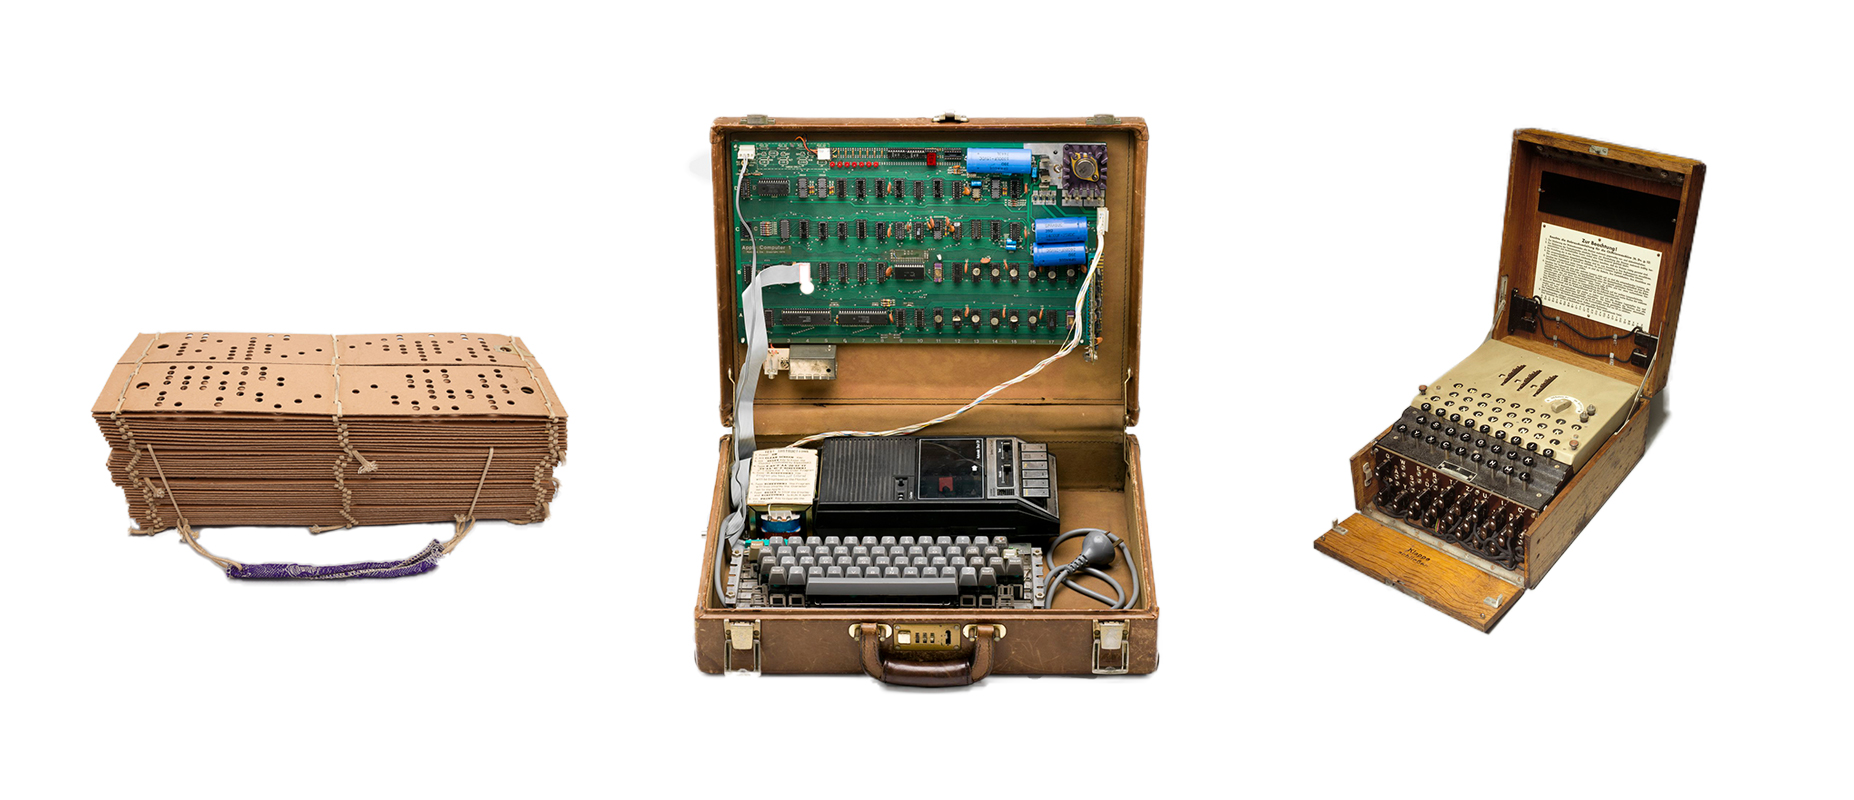 Jacquard punch cards with sample of ribbon, Apple I Computer and Enigma cipher machine